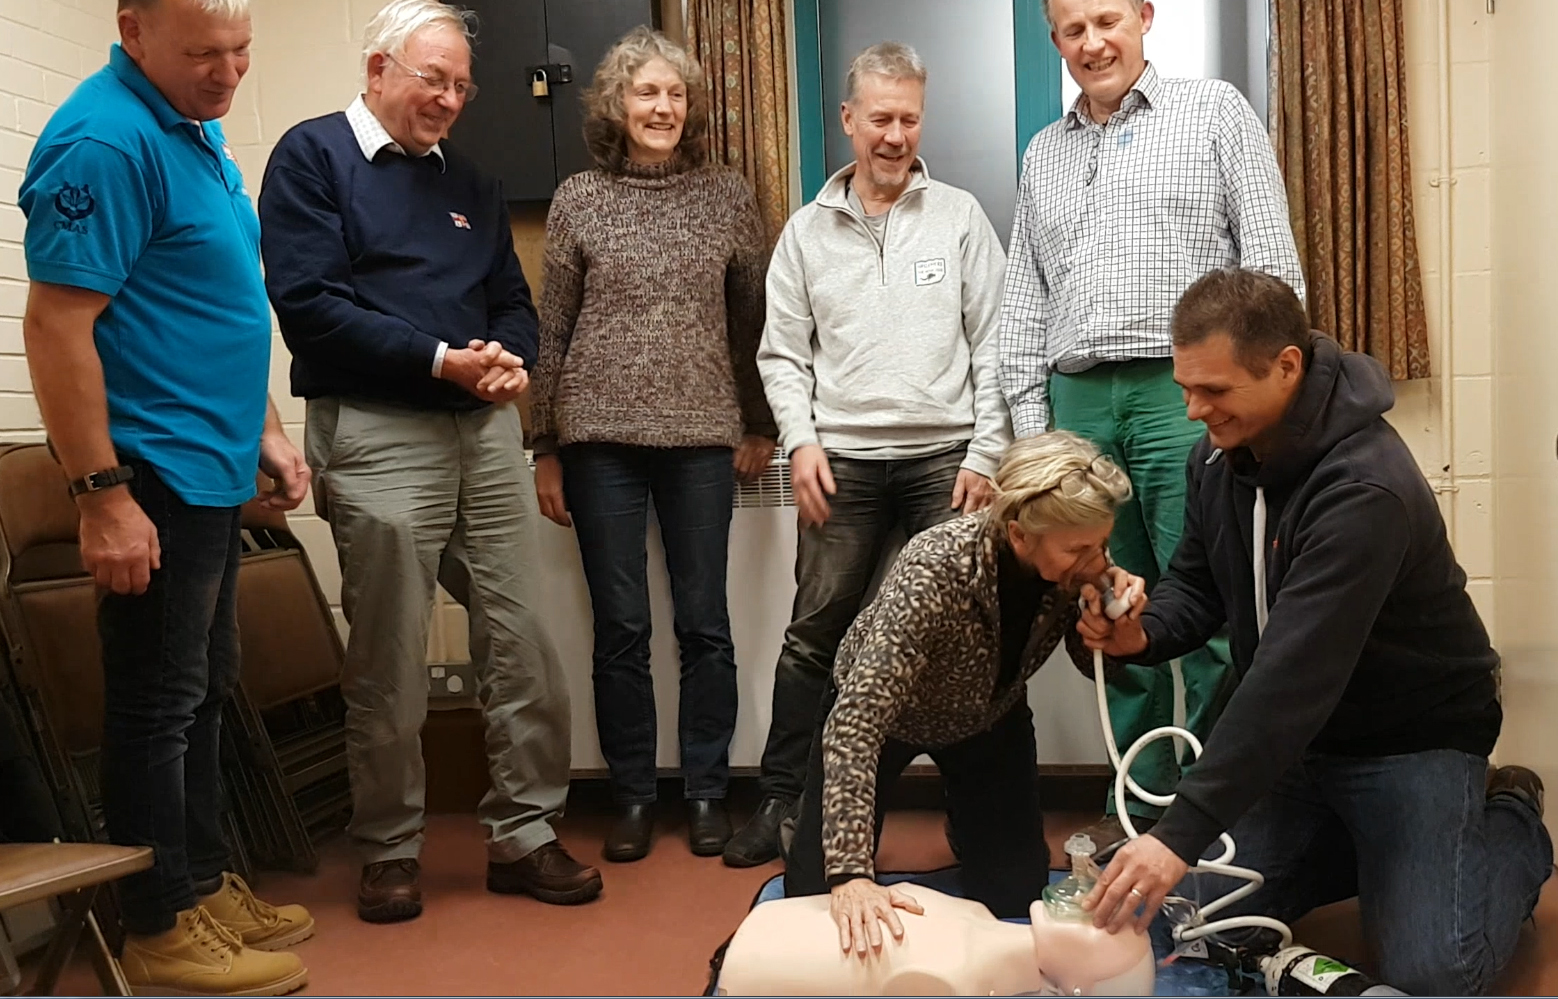 Oxygen enrichment  - Oxygen Admin and First Aid course Nov 2018